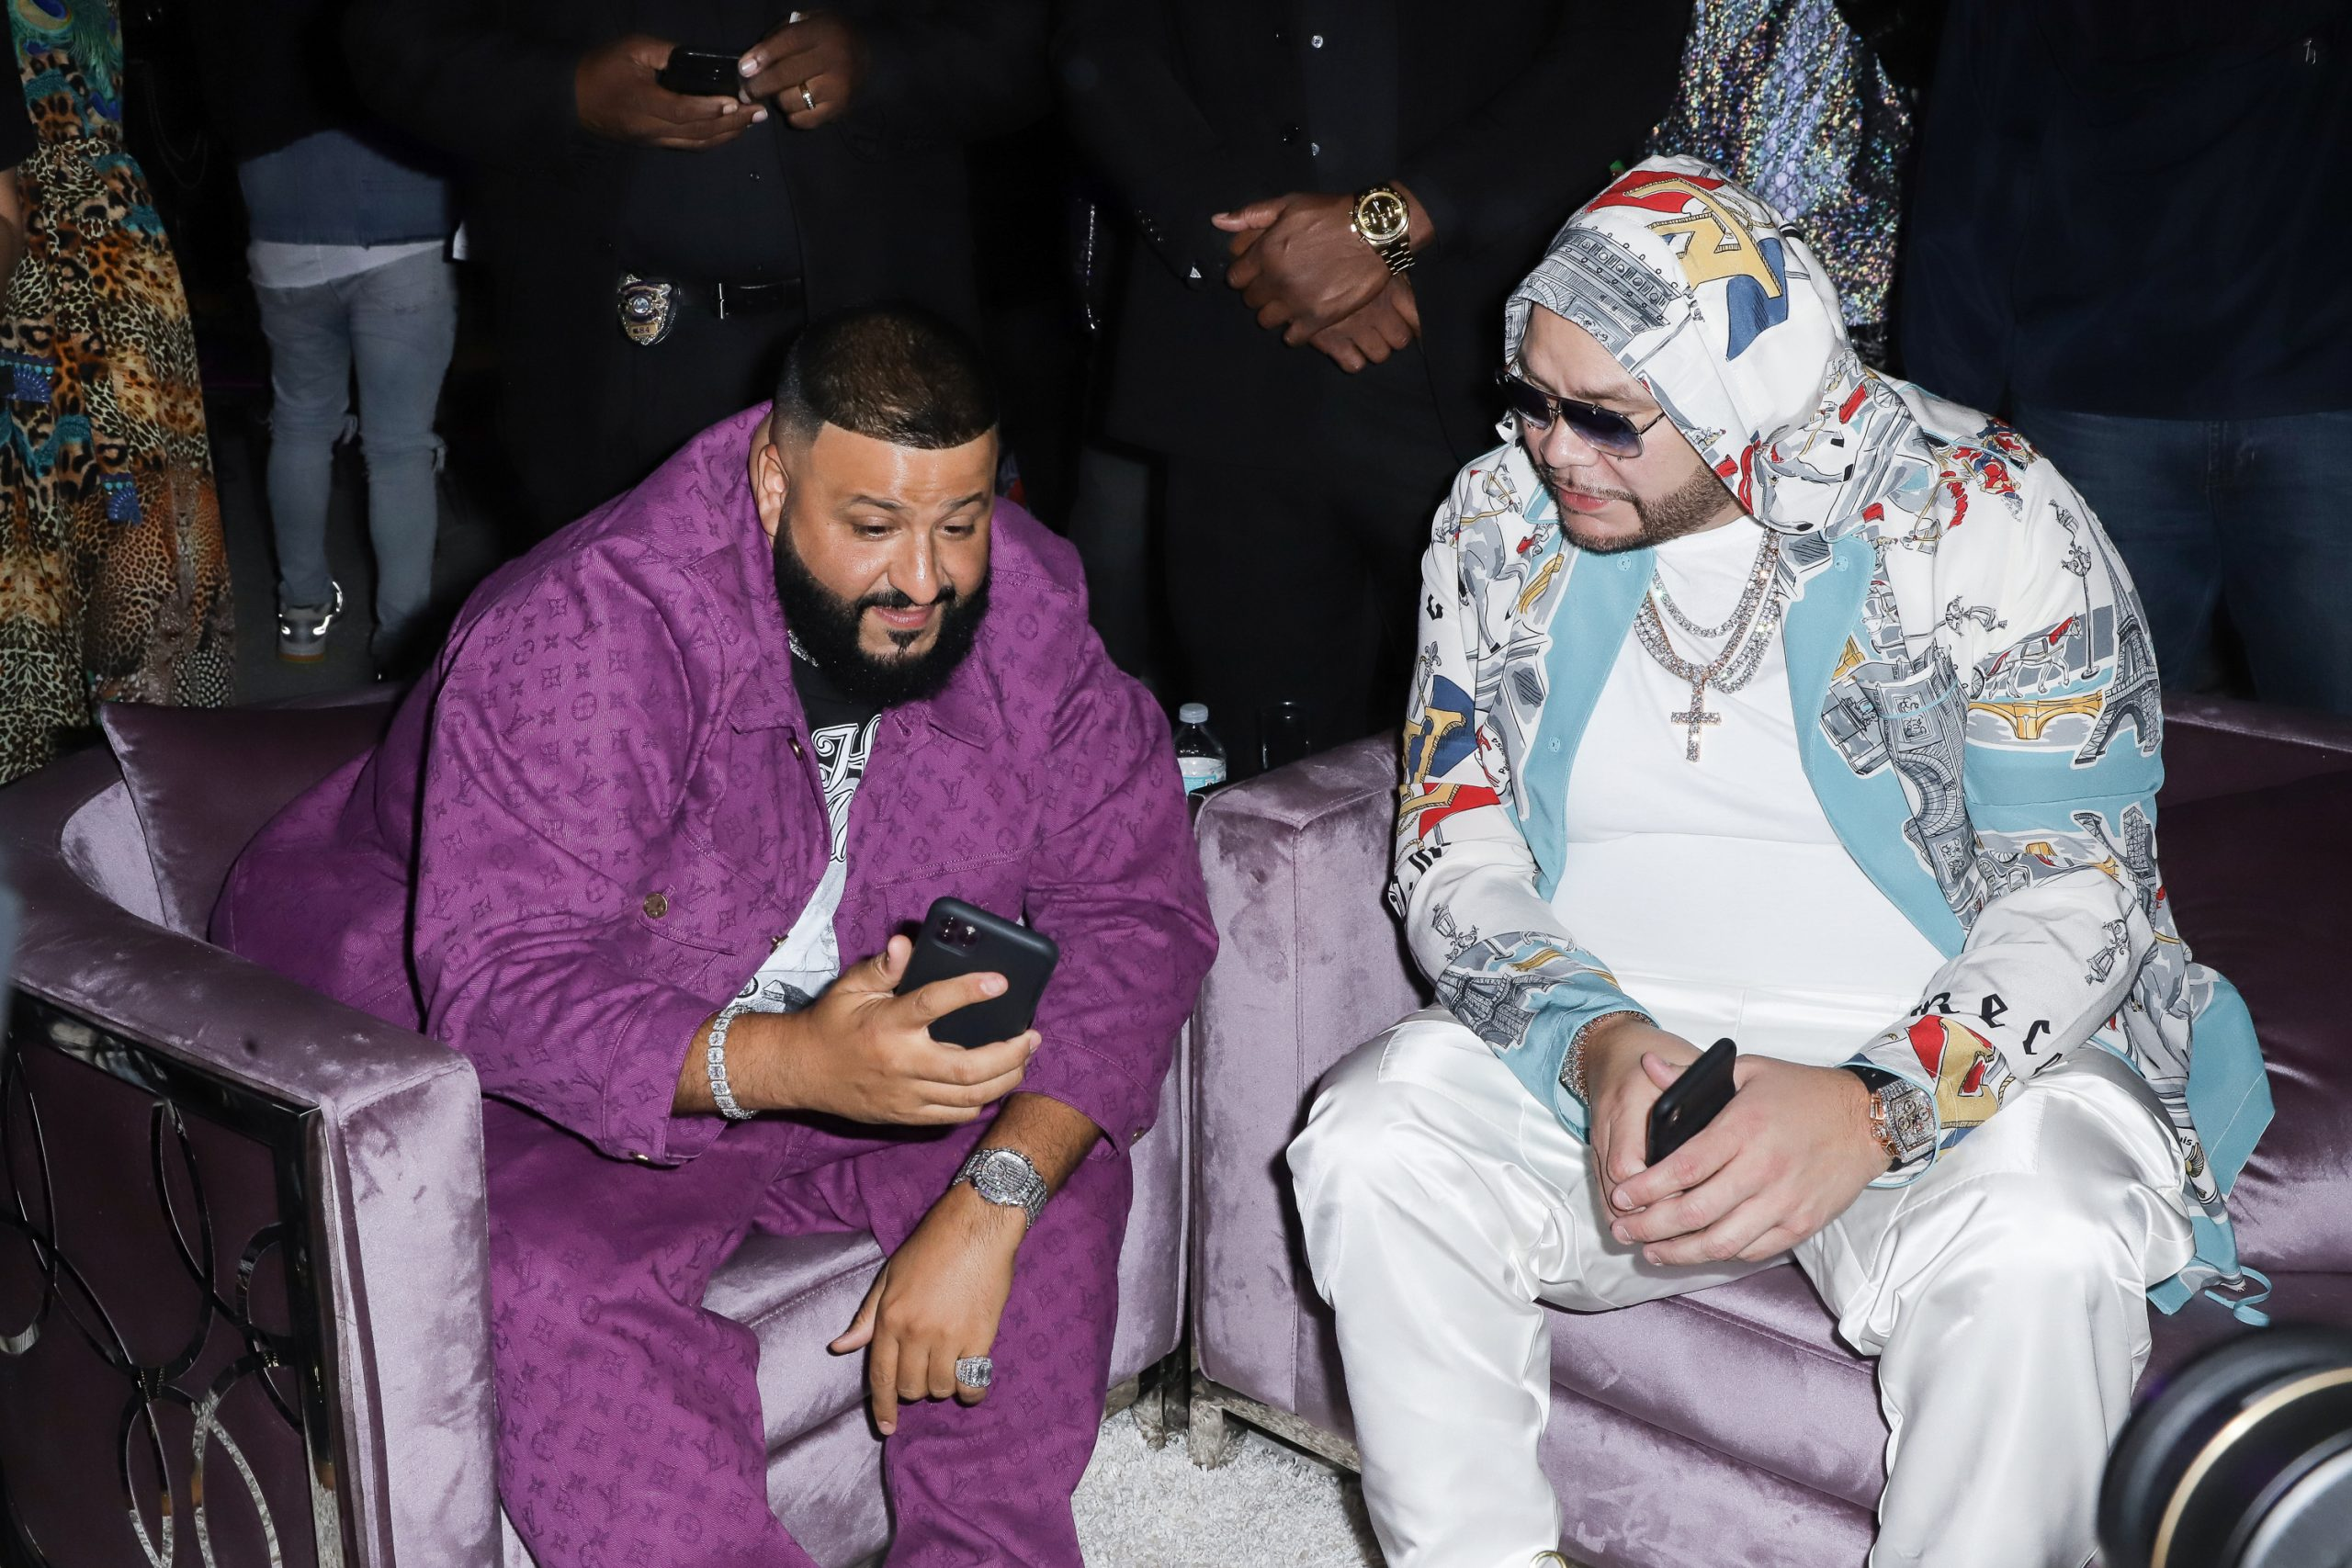 OnlyFans' Latest Superstar Account: Fat Joe & DJ Khaled